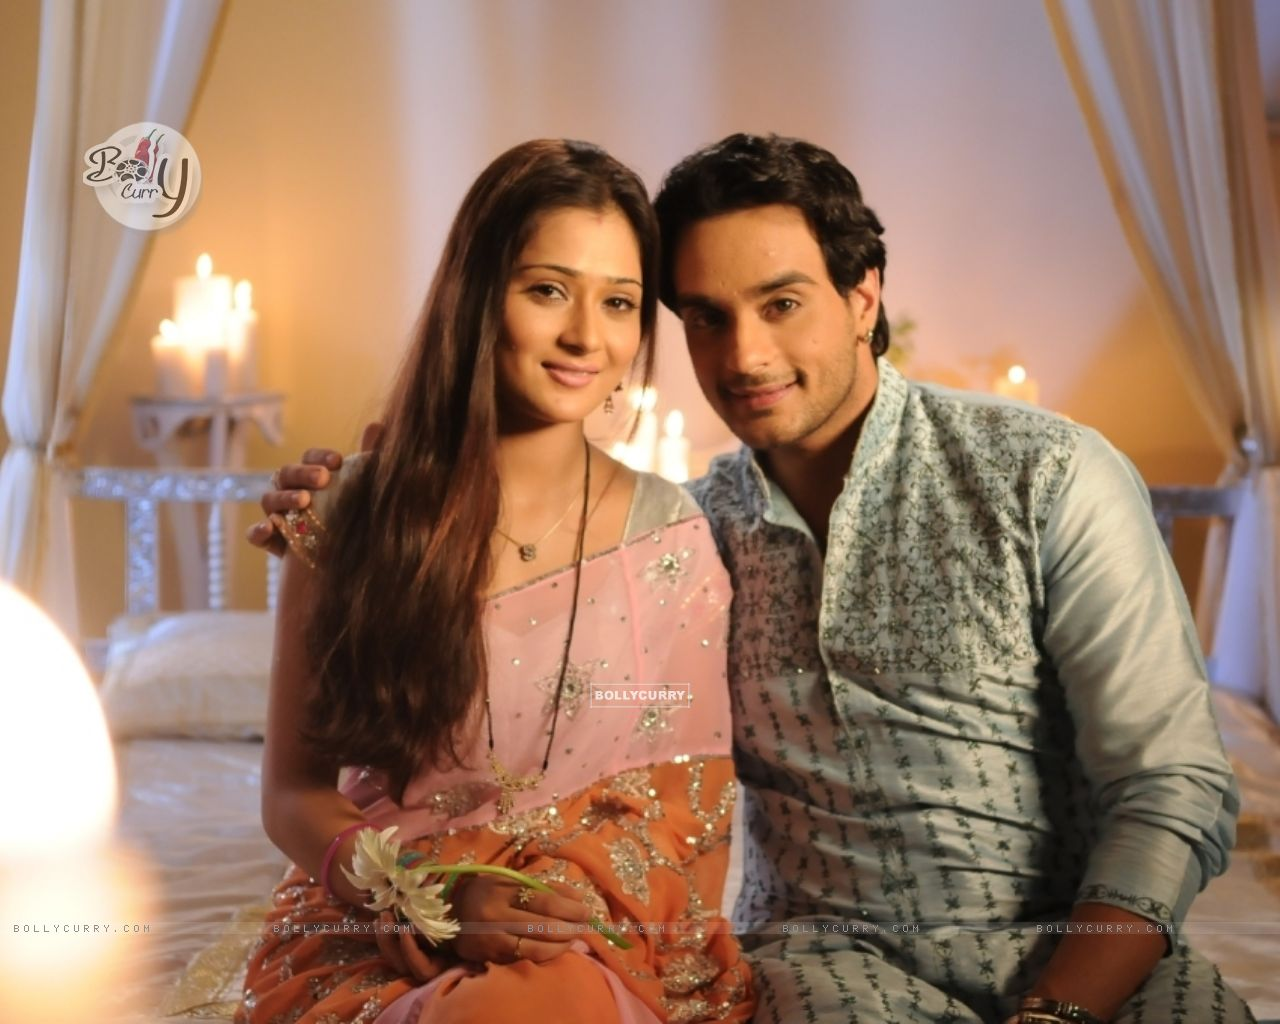 Wallpaper Lovely Couple Alekh And Sadhna 33351 Size 1280x1024